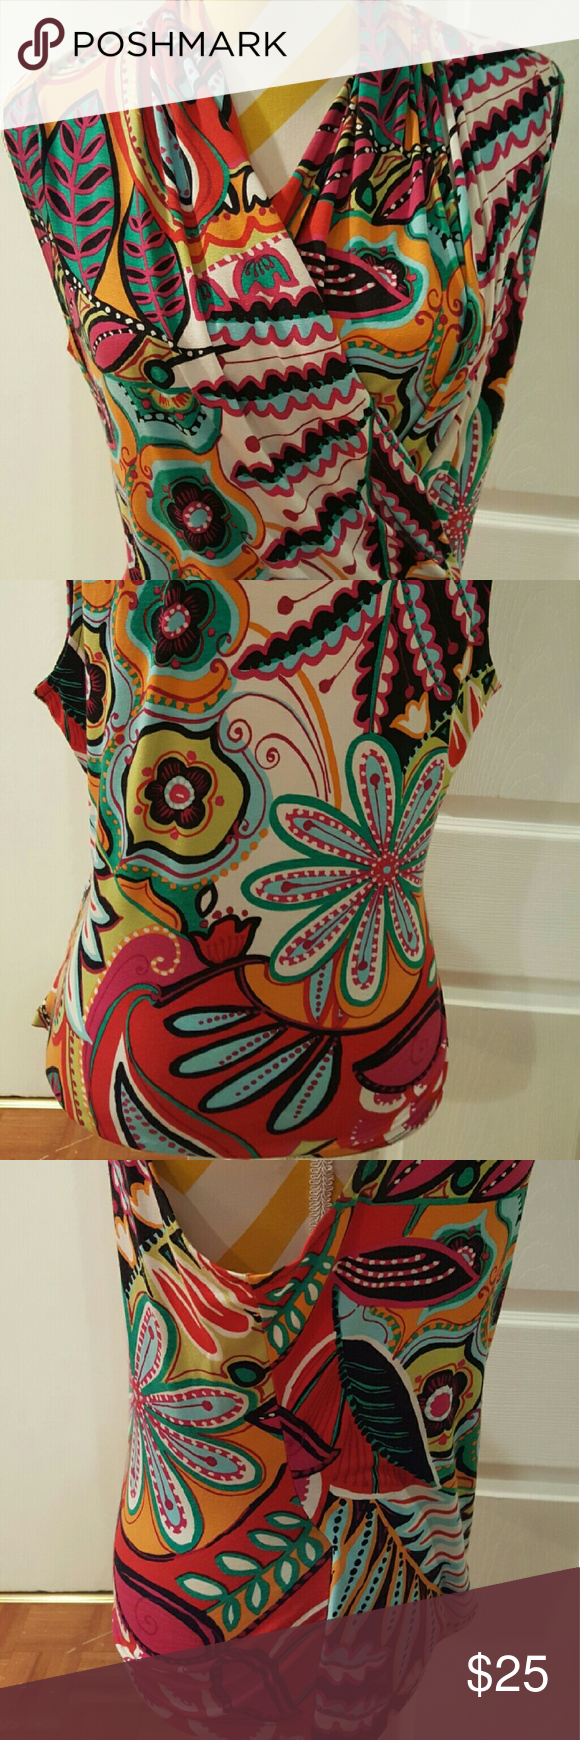 Jon Den colorful top Small Jon Den colorful top   size Small  In great condition Jon Den  Tops Blouses